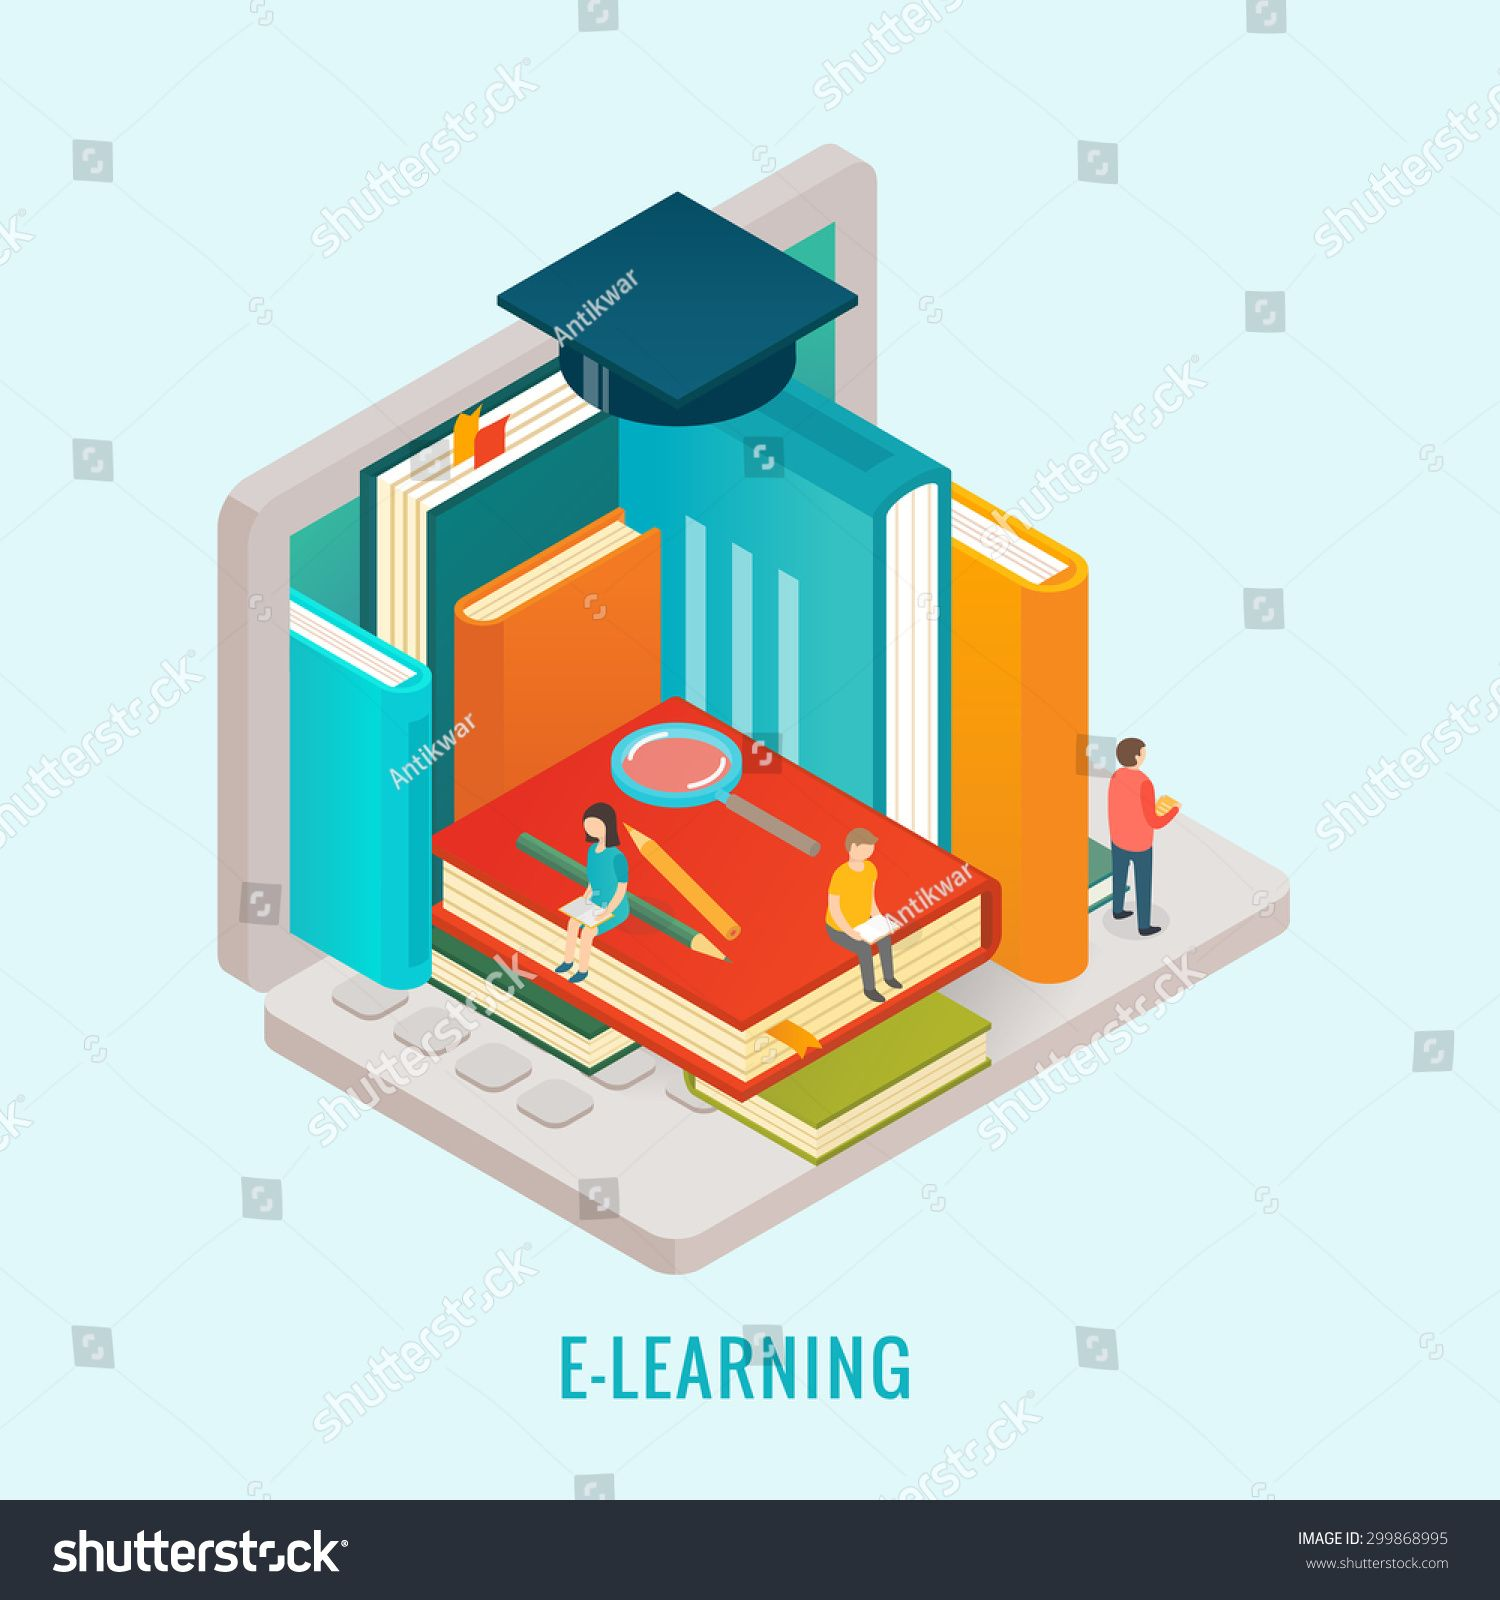 Isometric Education E Learning Concept Ad Sponsored Education Isometric Concept Learning Isometric Elearning Education